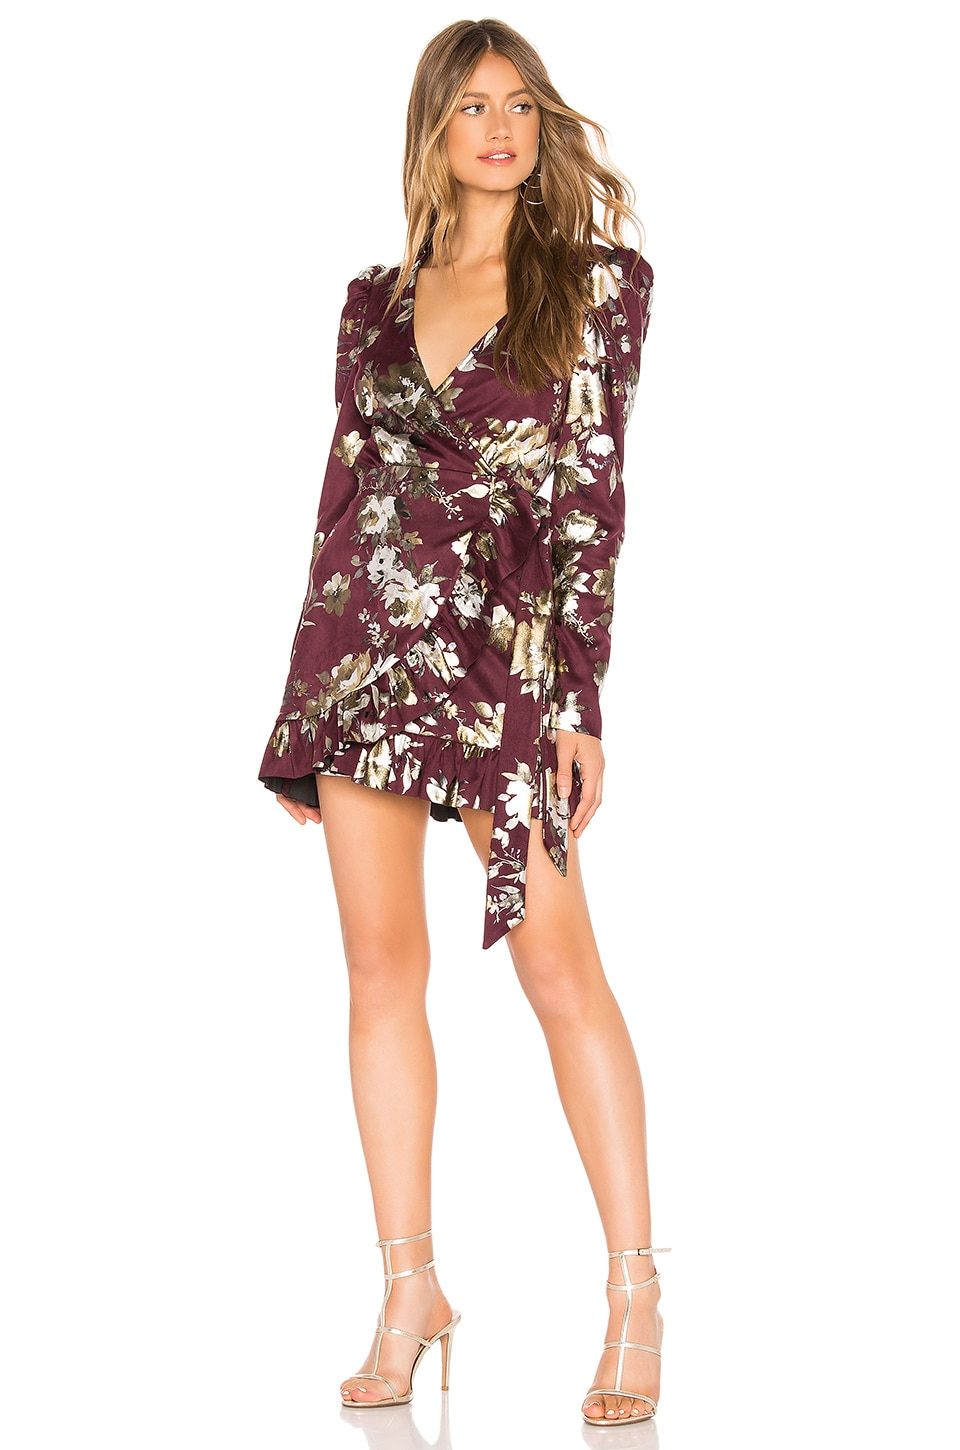 Tularosa Scout Dress in Maroon